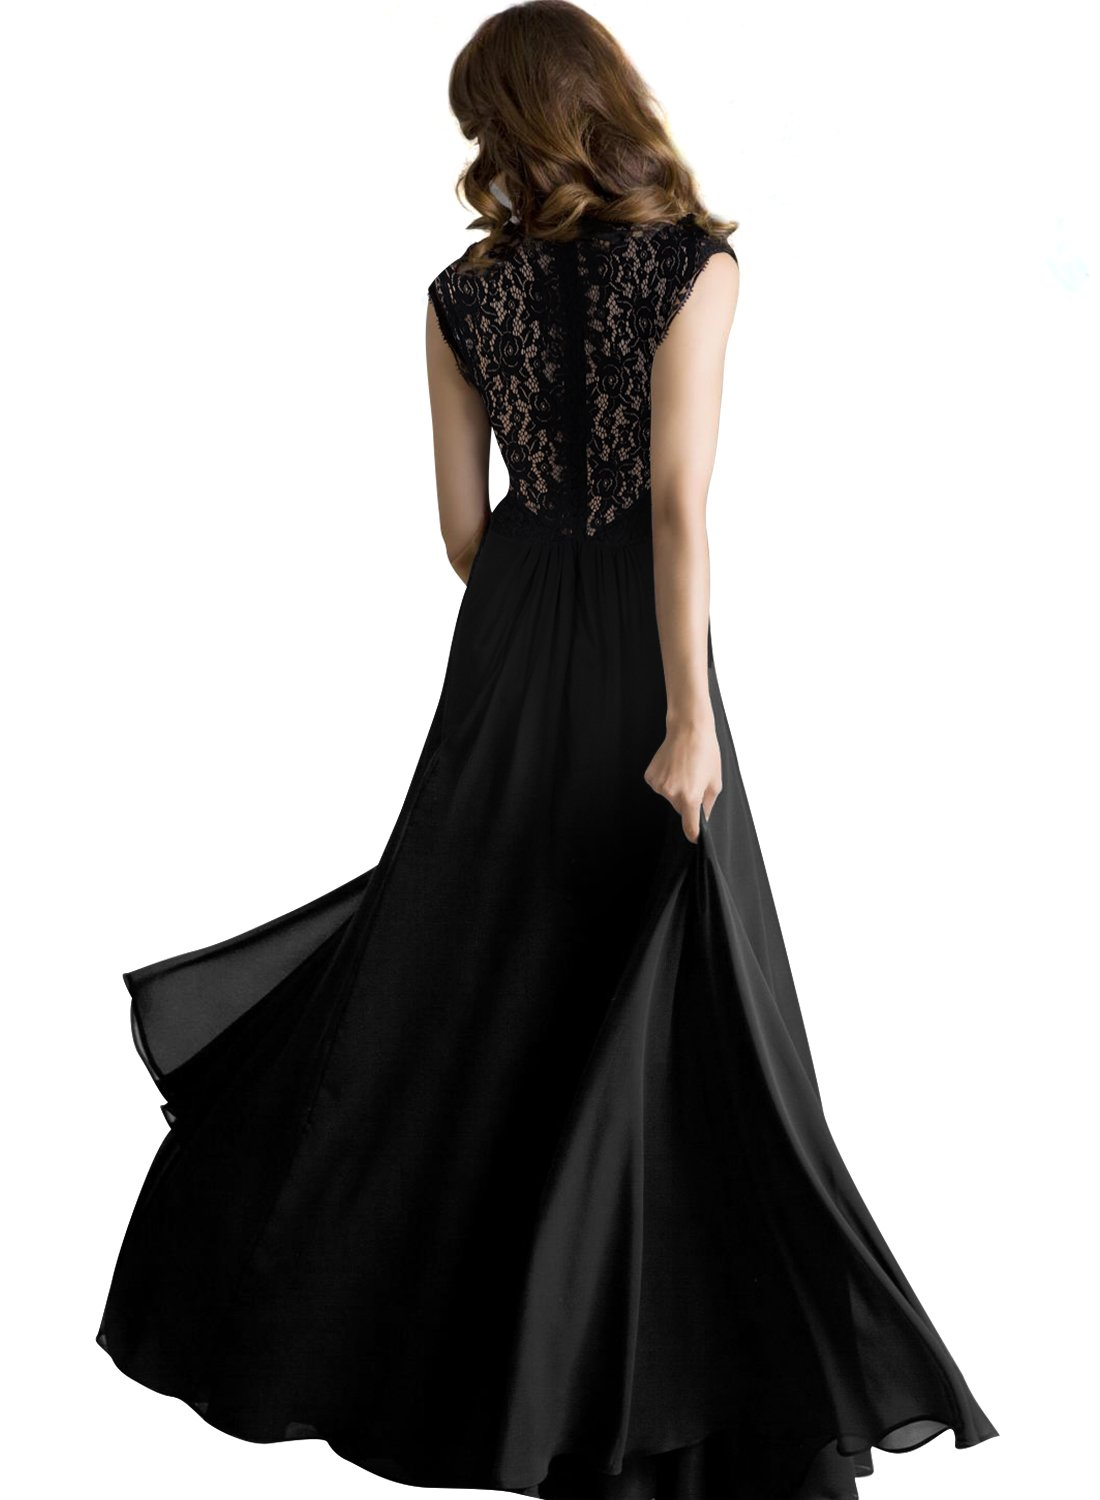 Shengdilu Women's Ball Gown Prom Maxi Long Evening Formal Party Wedding Bridesmaid Dress S Black by Shengdilu (Image #2)